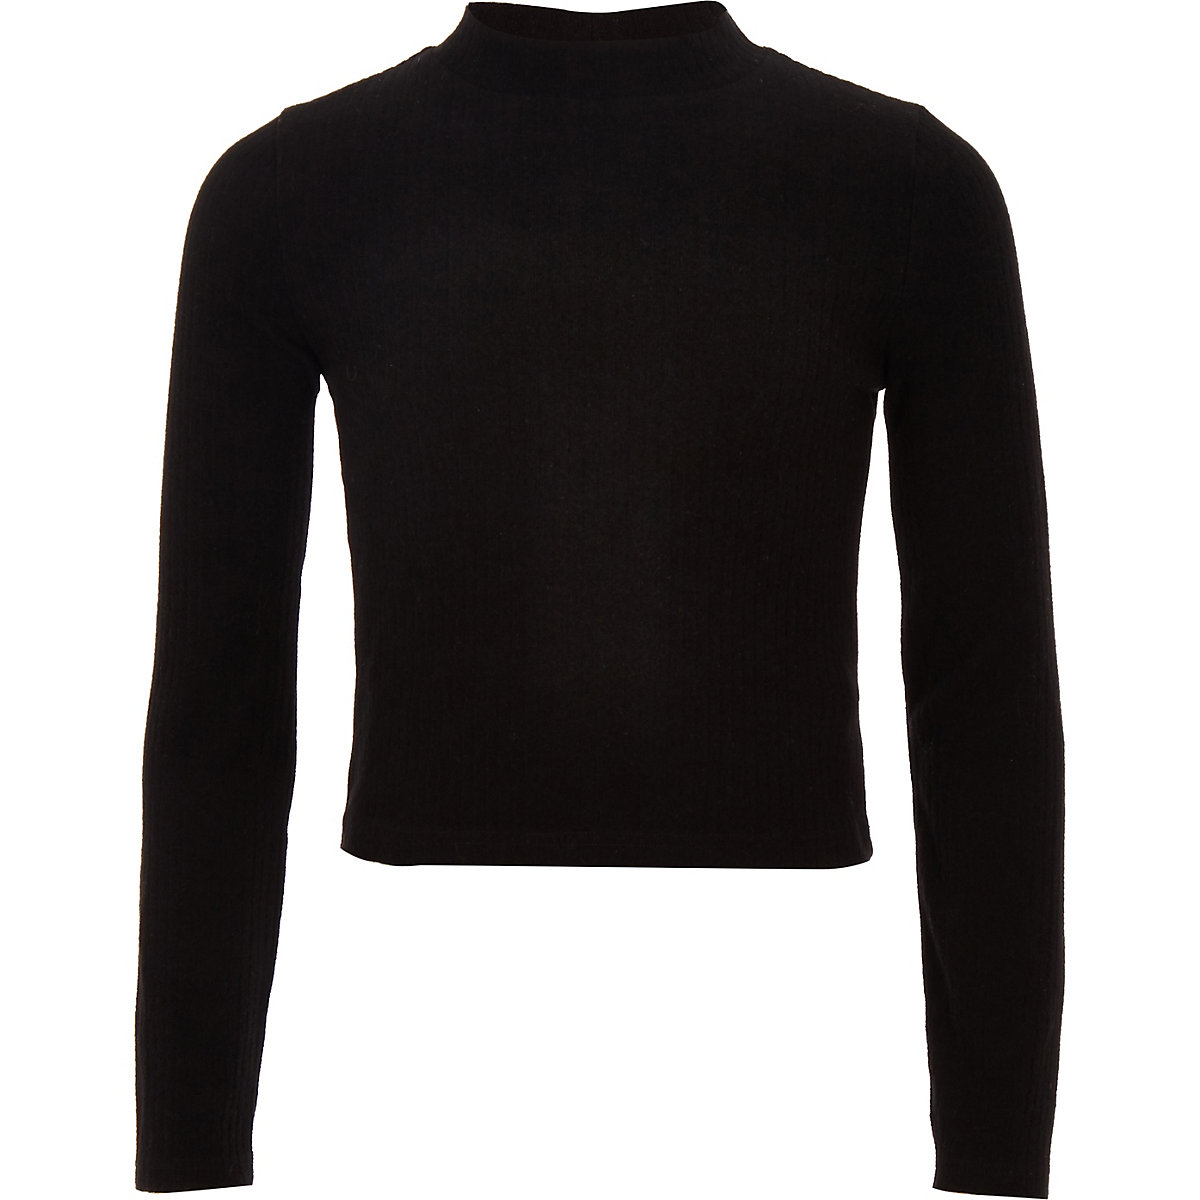 Girls black ribbed long sleeve top